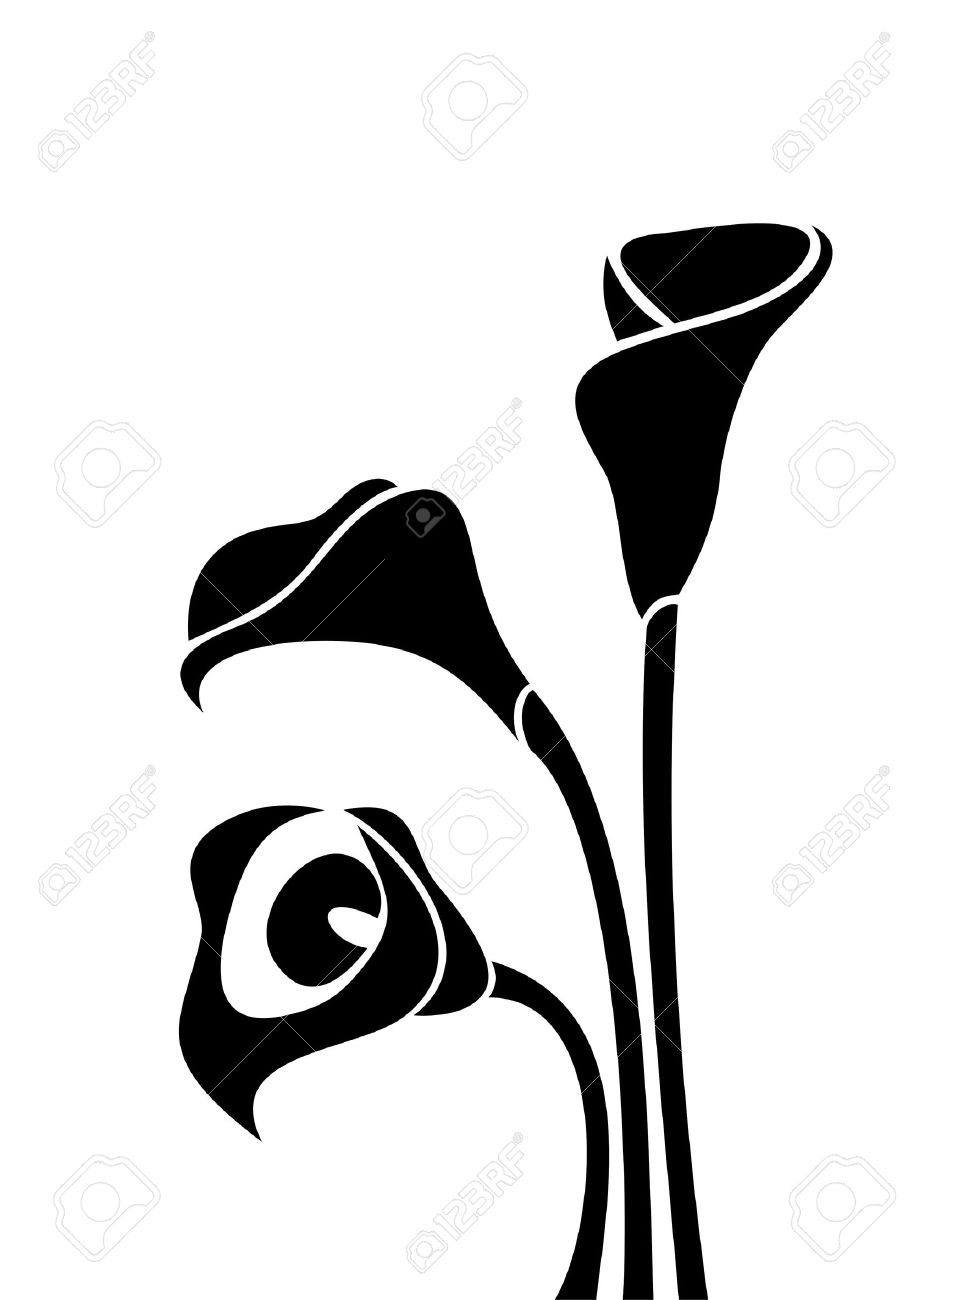 black silhouettes of calla lilies illustration royalty free cliparts rh 123rf com calla lily border clipart calla lily clip art free